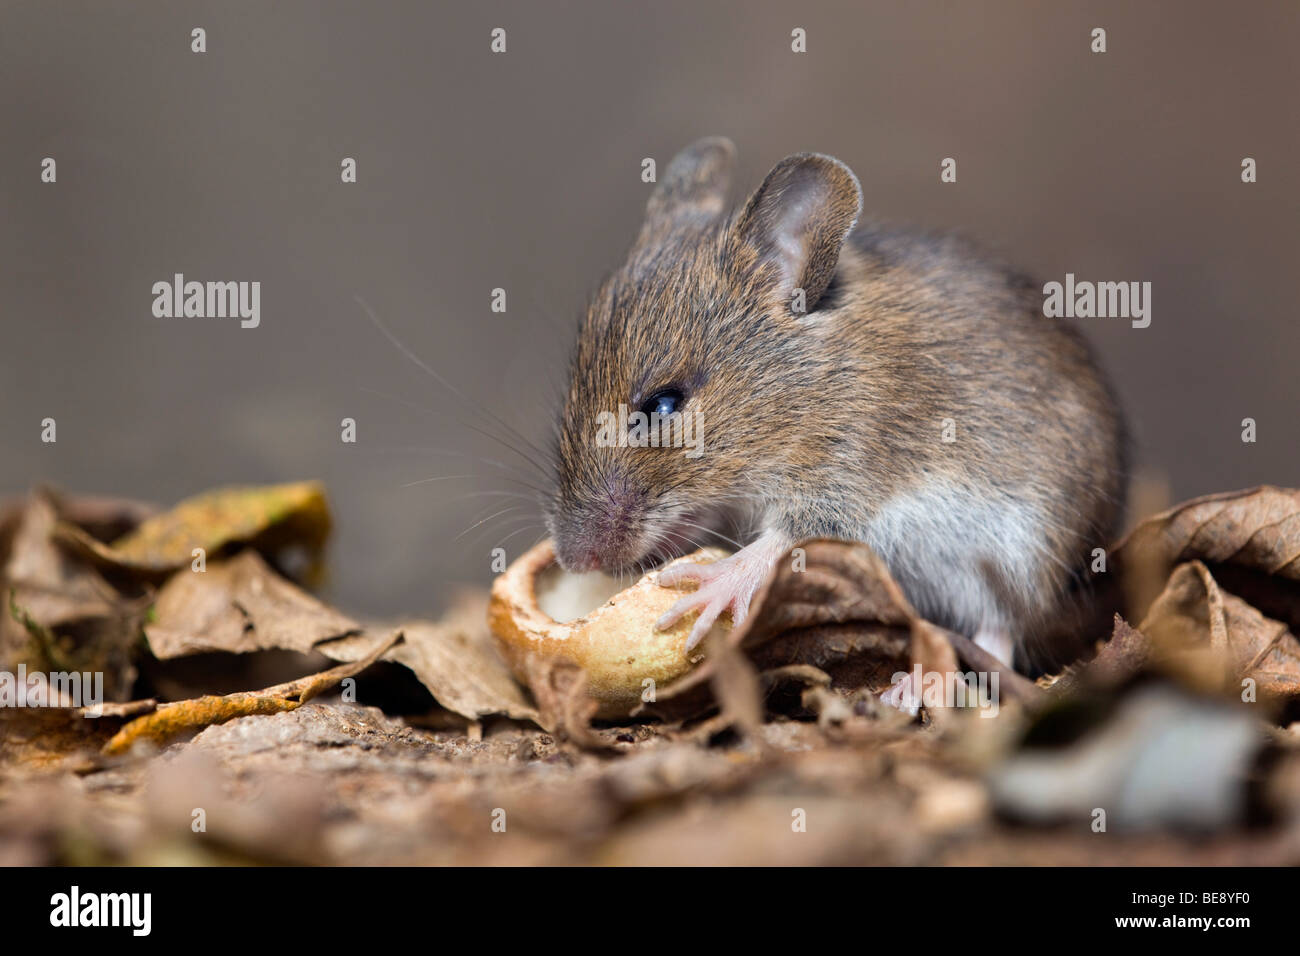 wood mouse; Apodemus sylvaticus; eating a nut - Stock Image